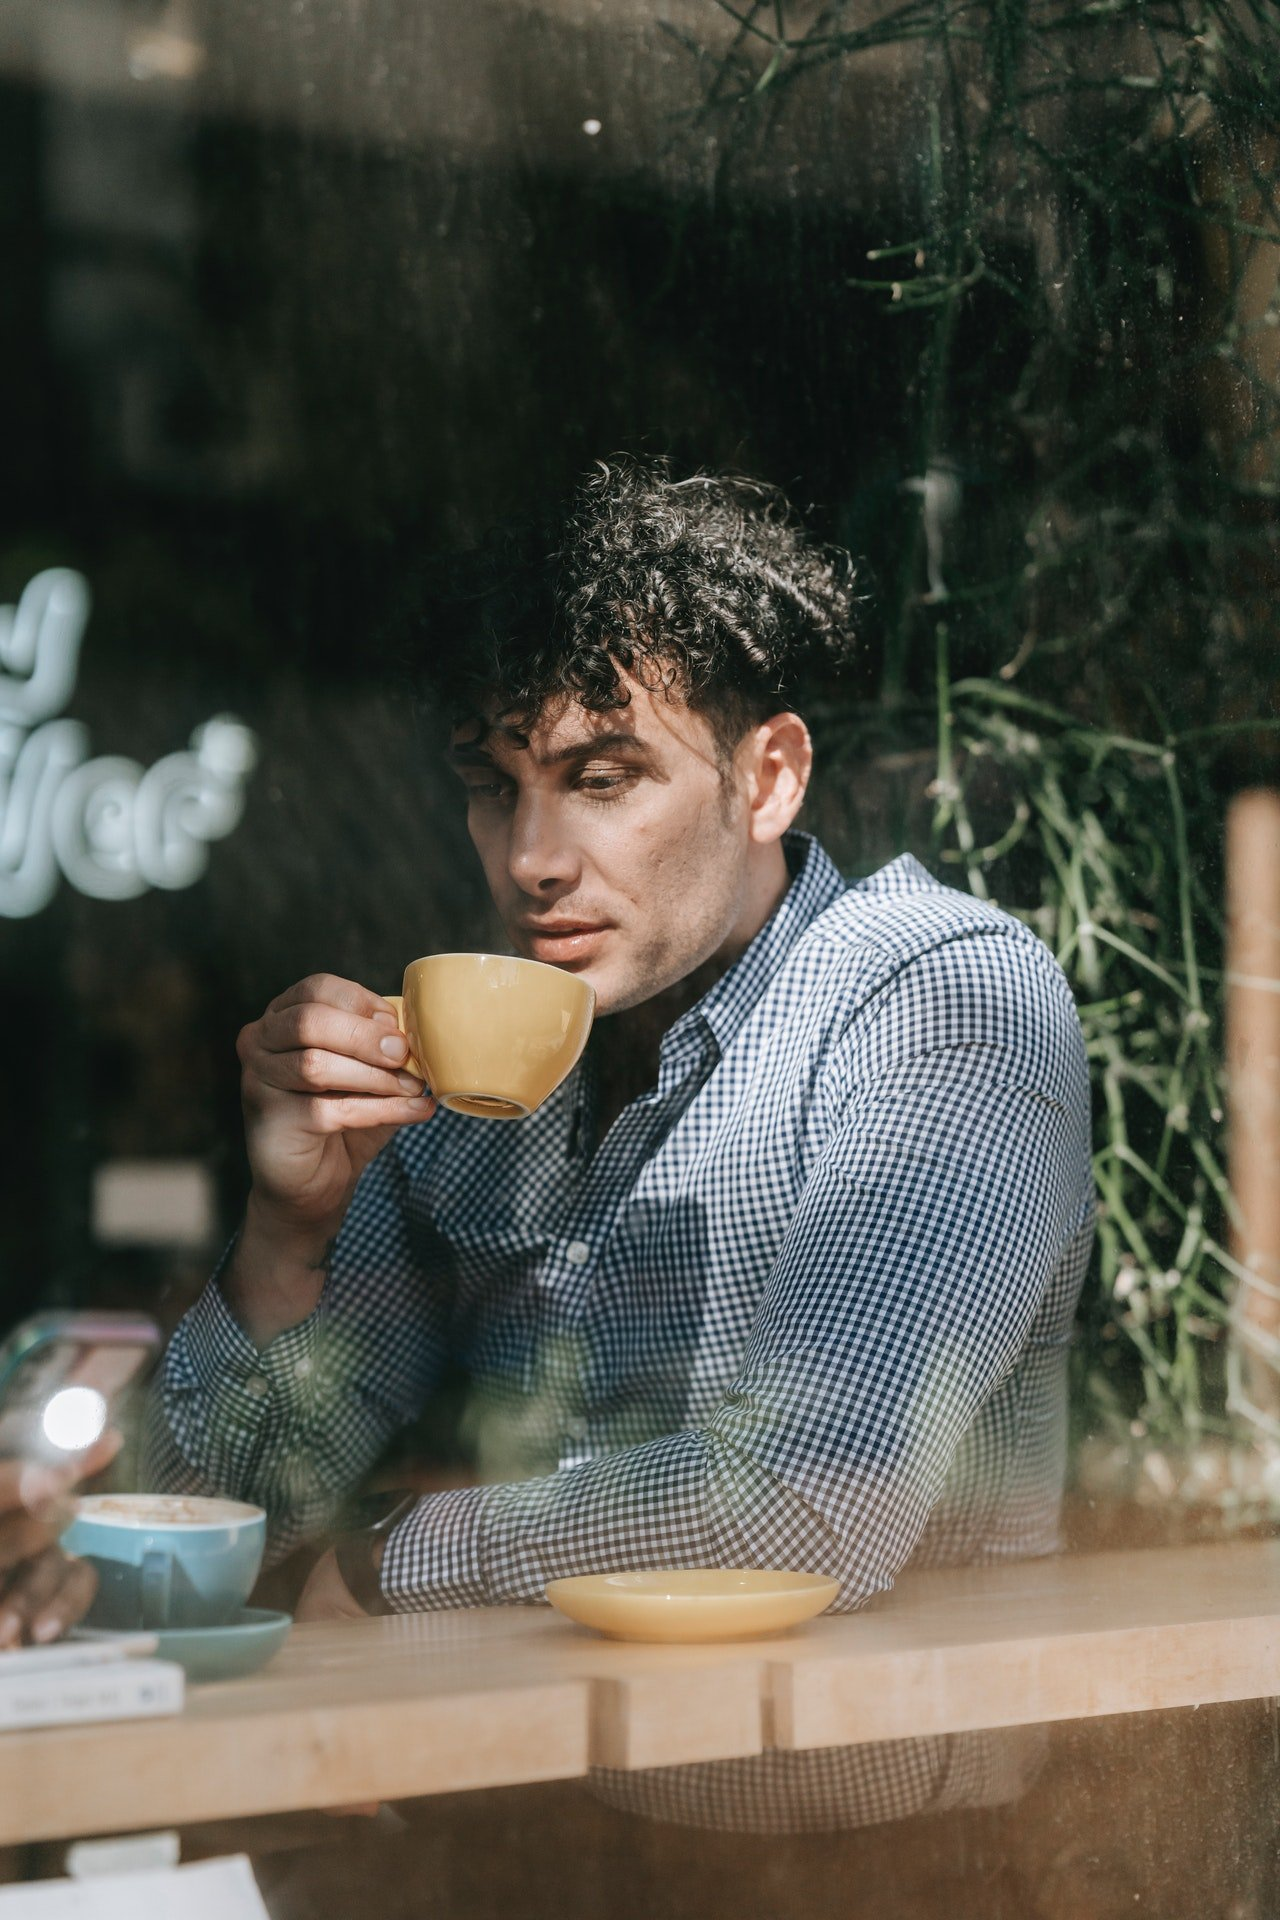 He ordered coffee and watched Amanda work.   Source: Pexels